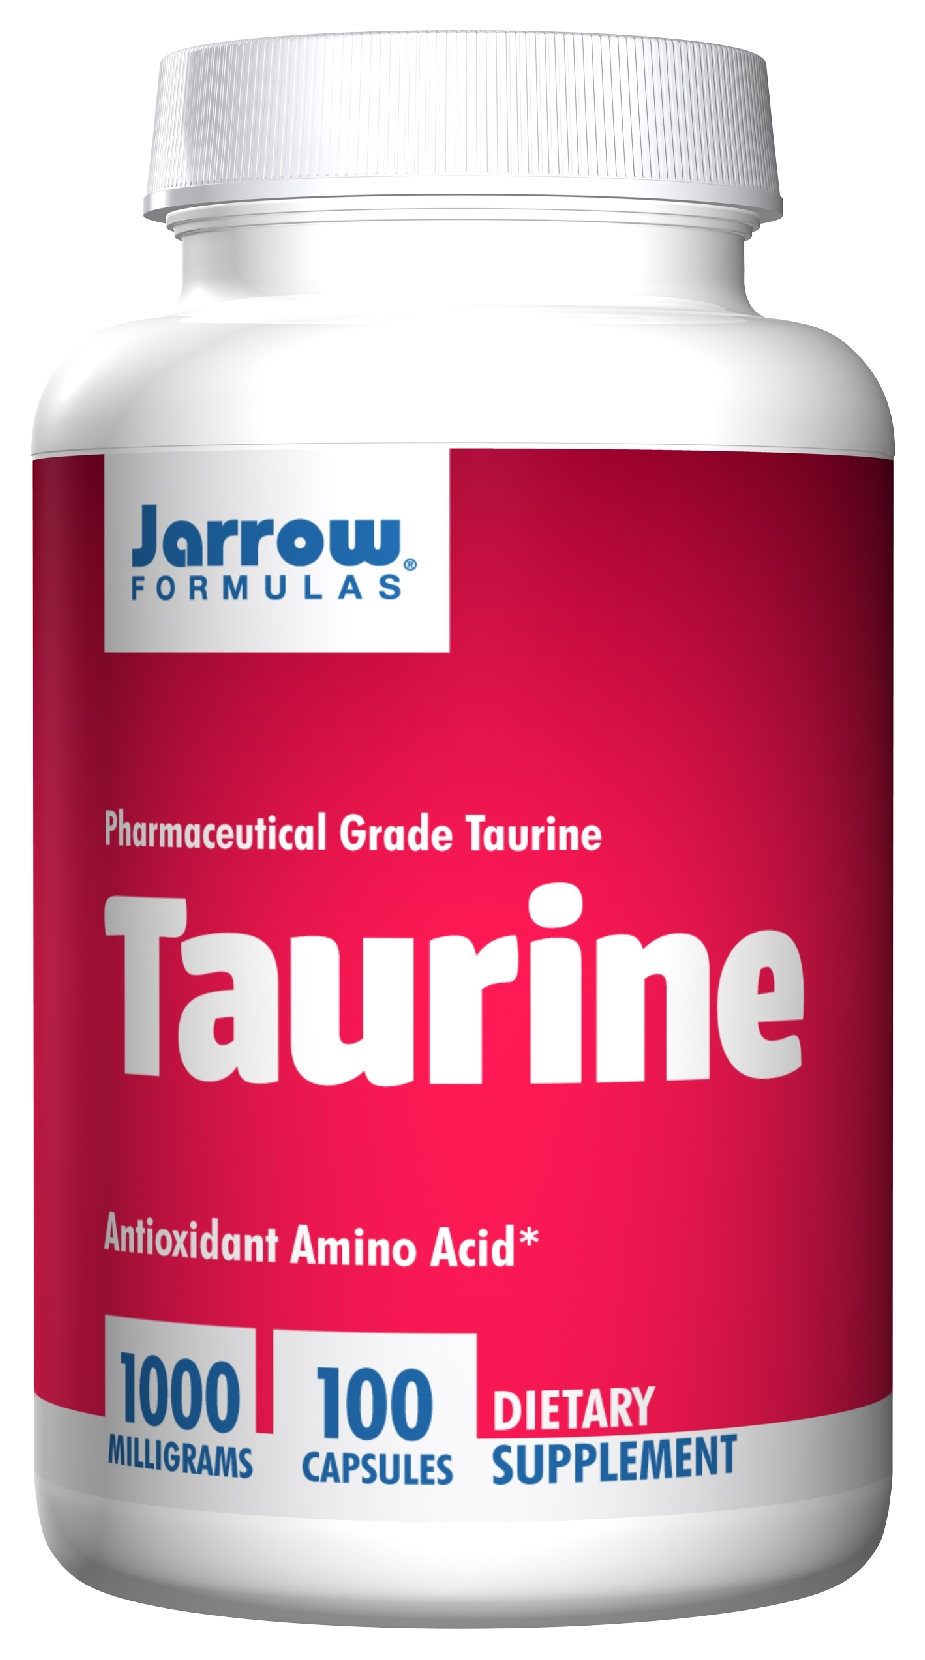 Taurine 1000 1000 mg 100 caps by Jarrow Formulas